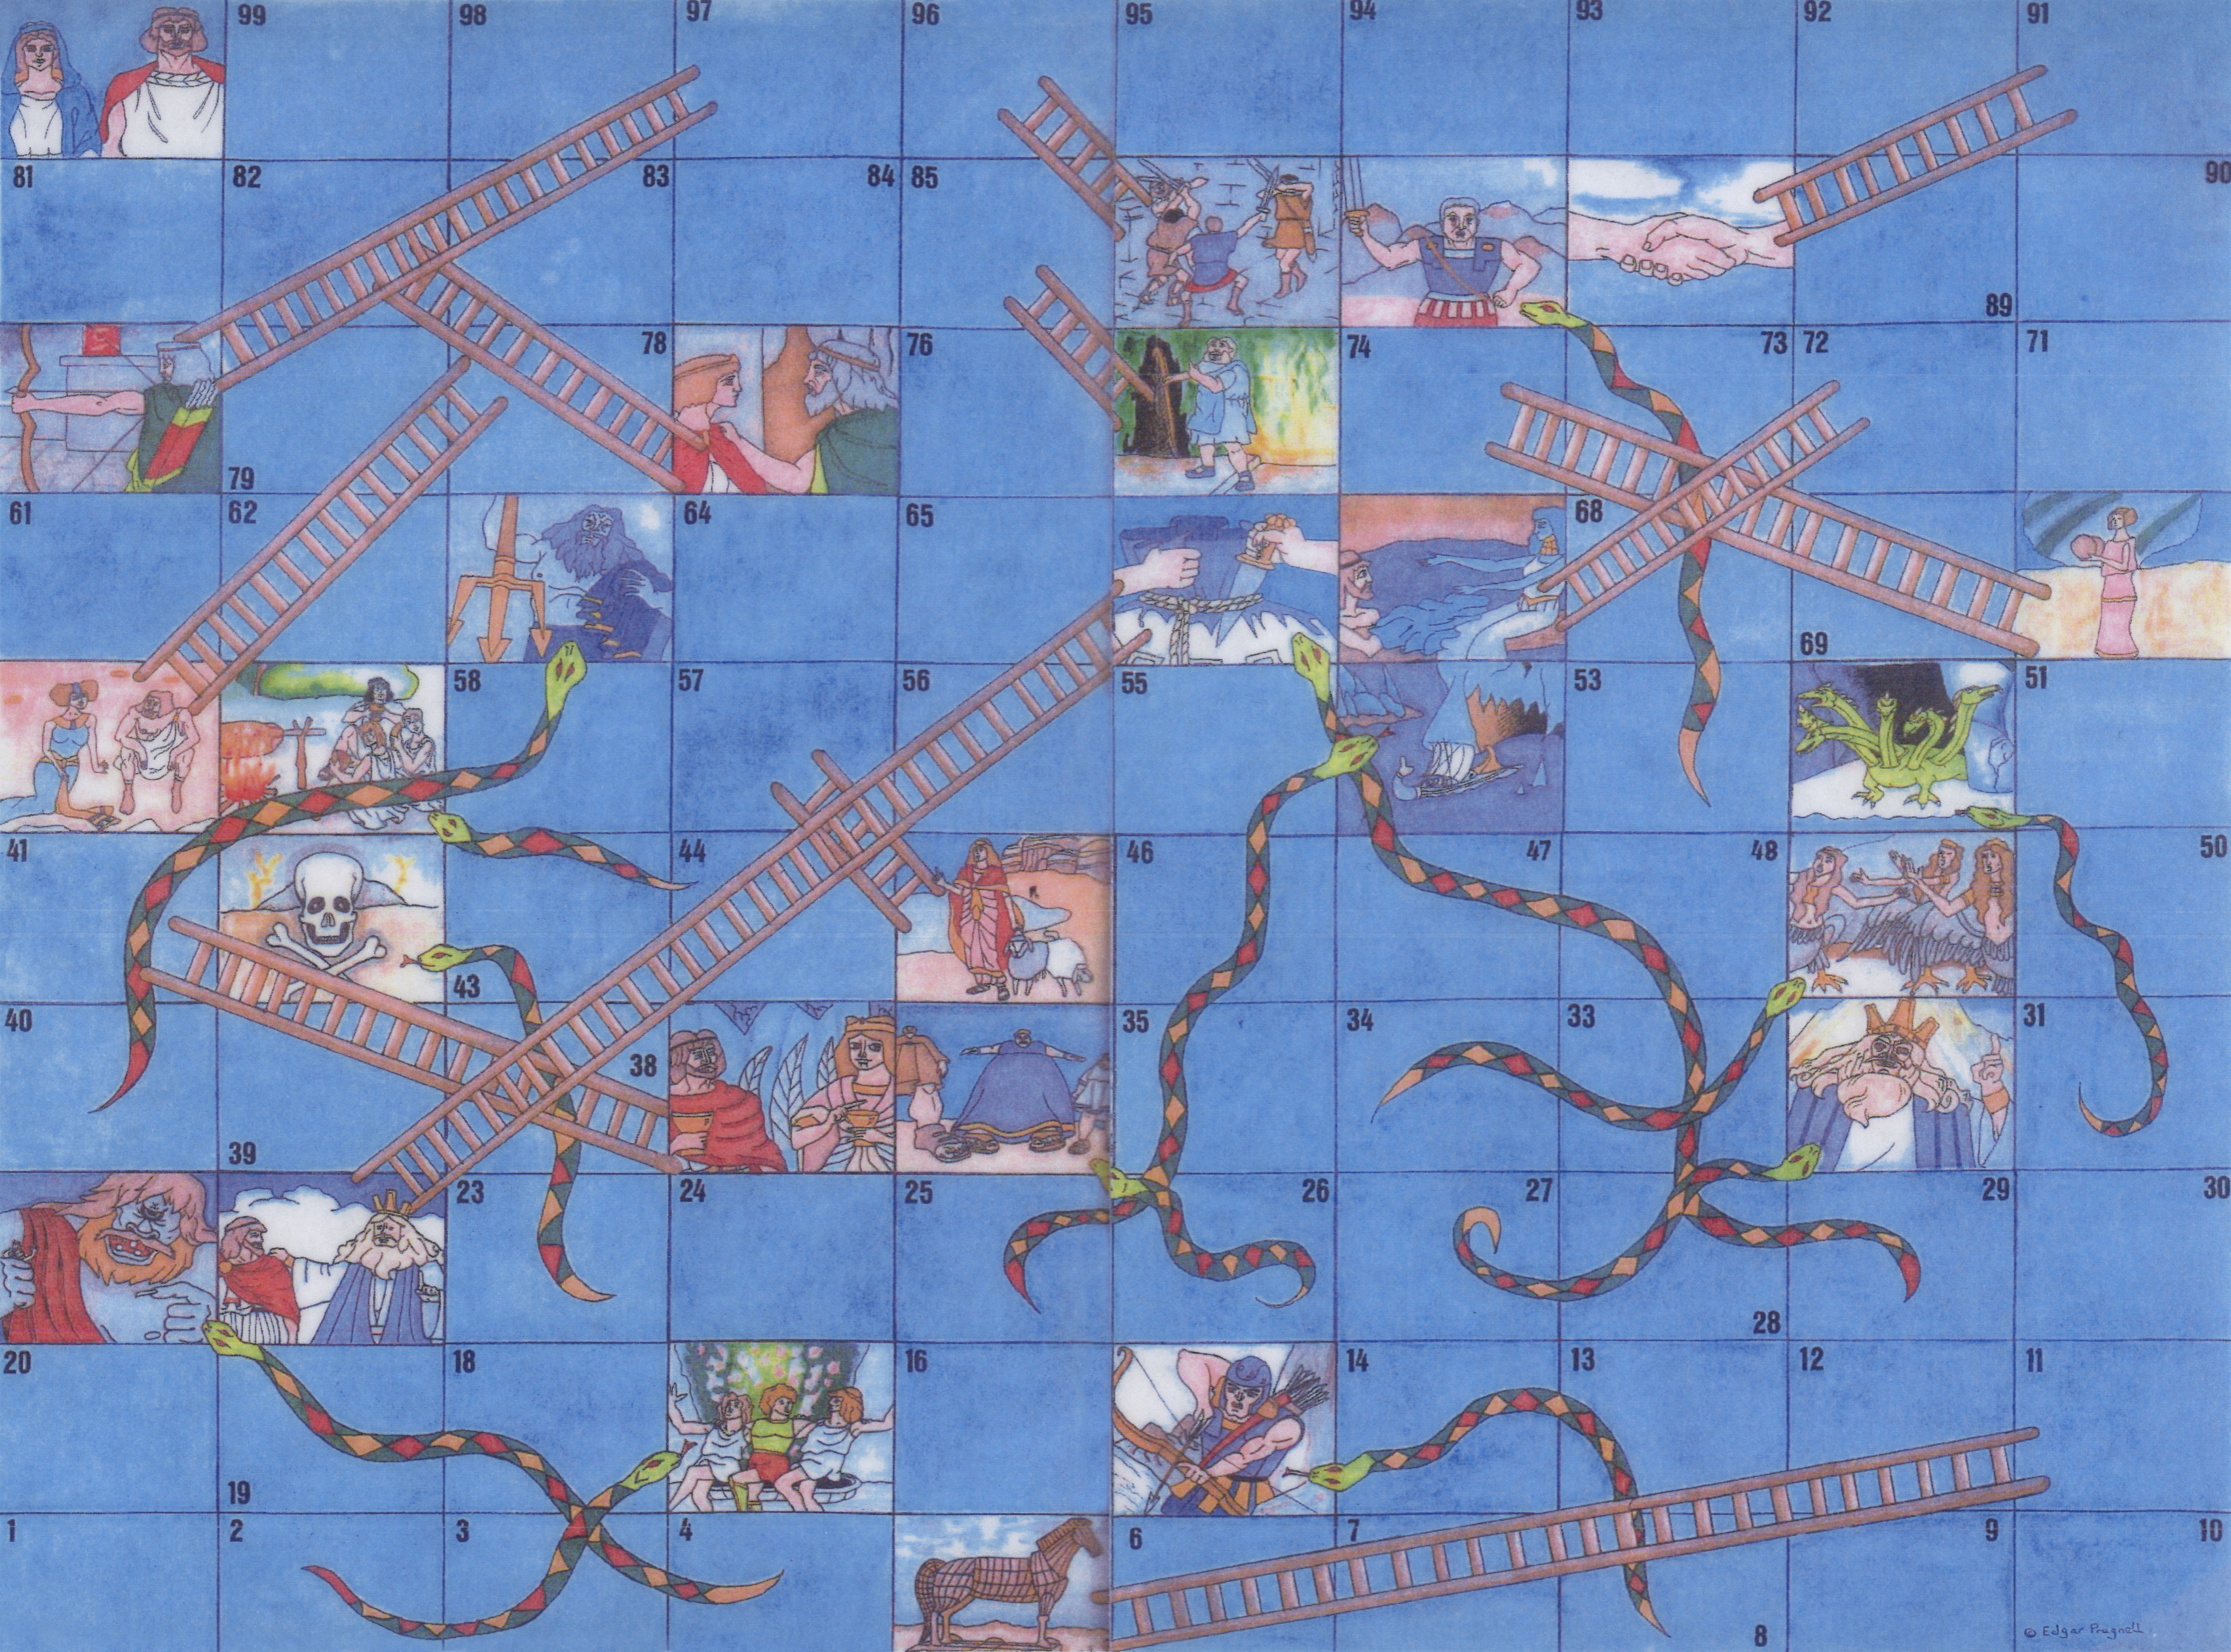 The Odyssey Snakes and Ladders Game available in Latin, English and Classical or Modern Greek